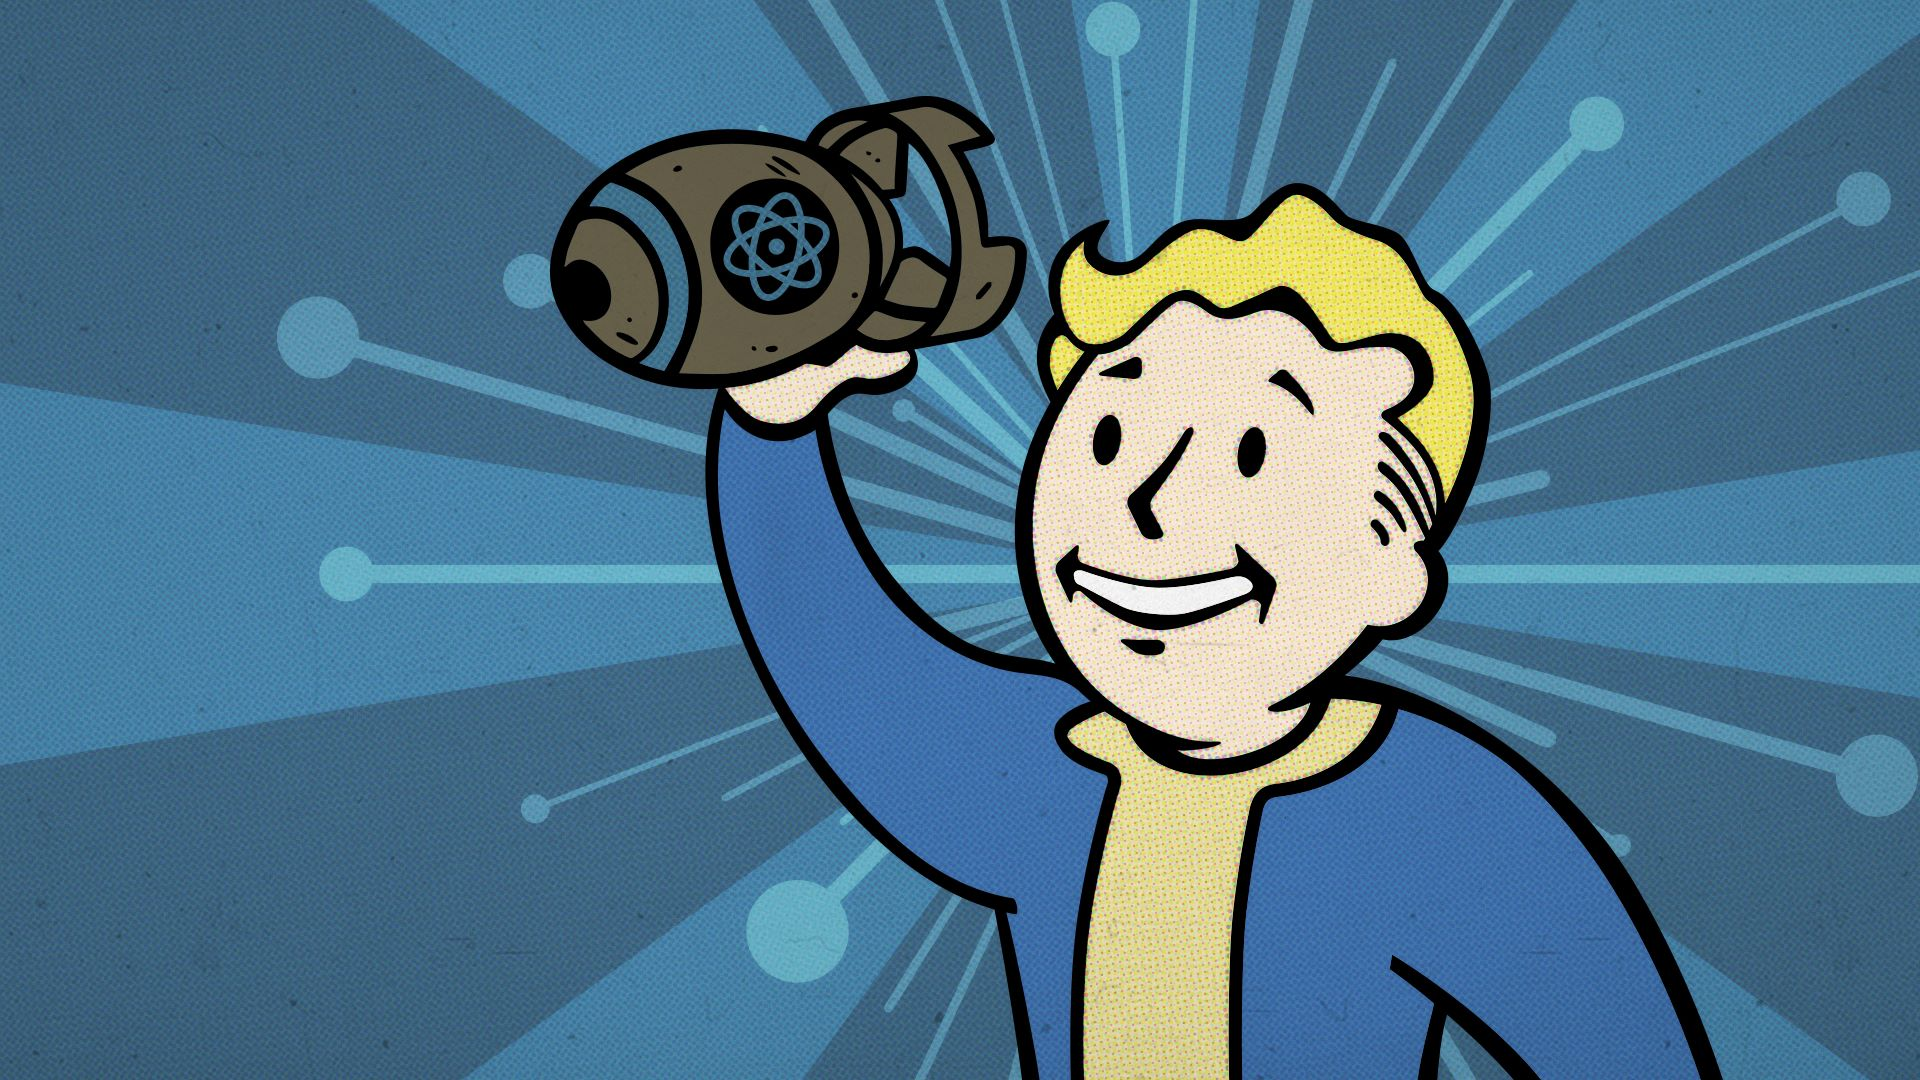 Dark Fall Wallpaper Consigue La Edici 243 N Digital De Fallout 76 Para Xbox One